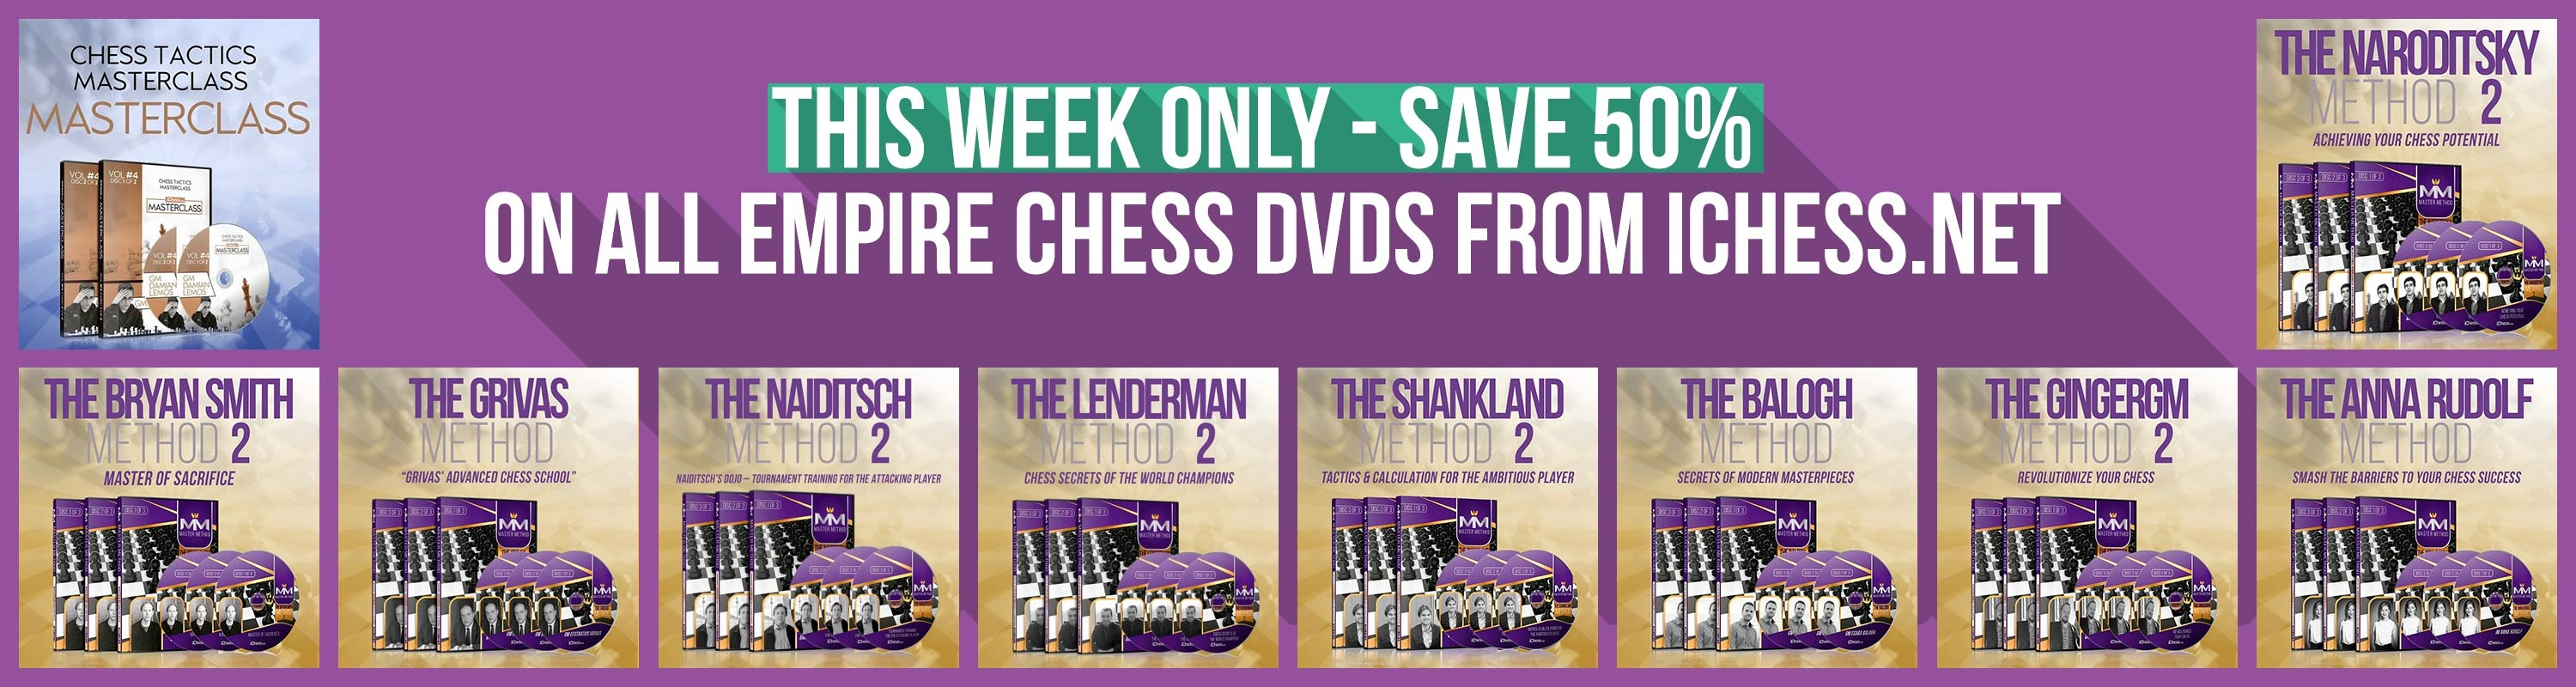 This Week Only: Save 50% on all Empire Chess DVDs from iChess.net